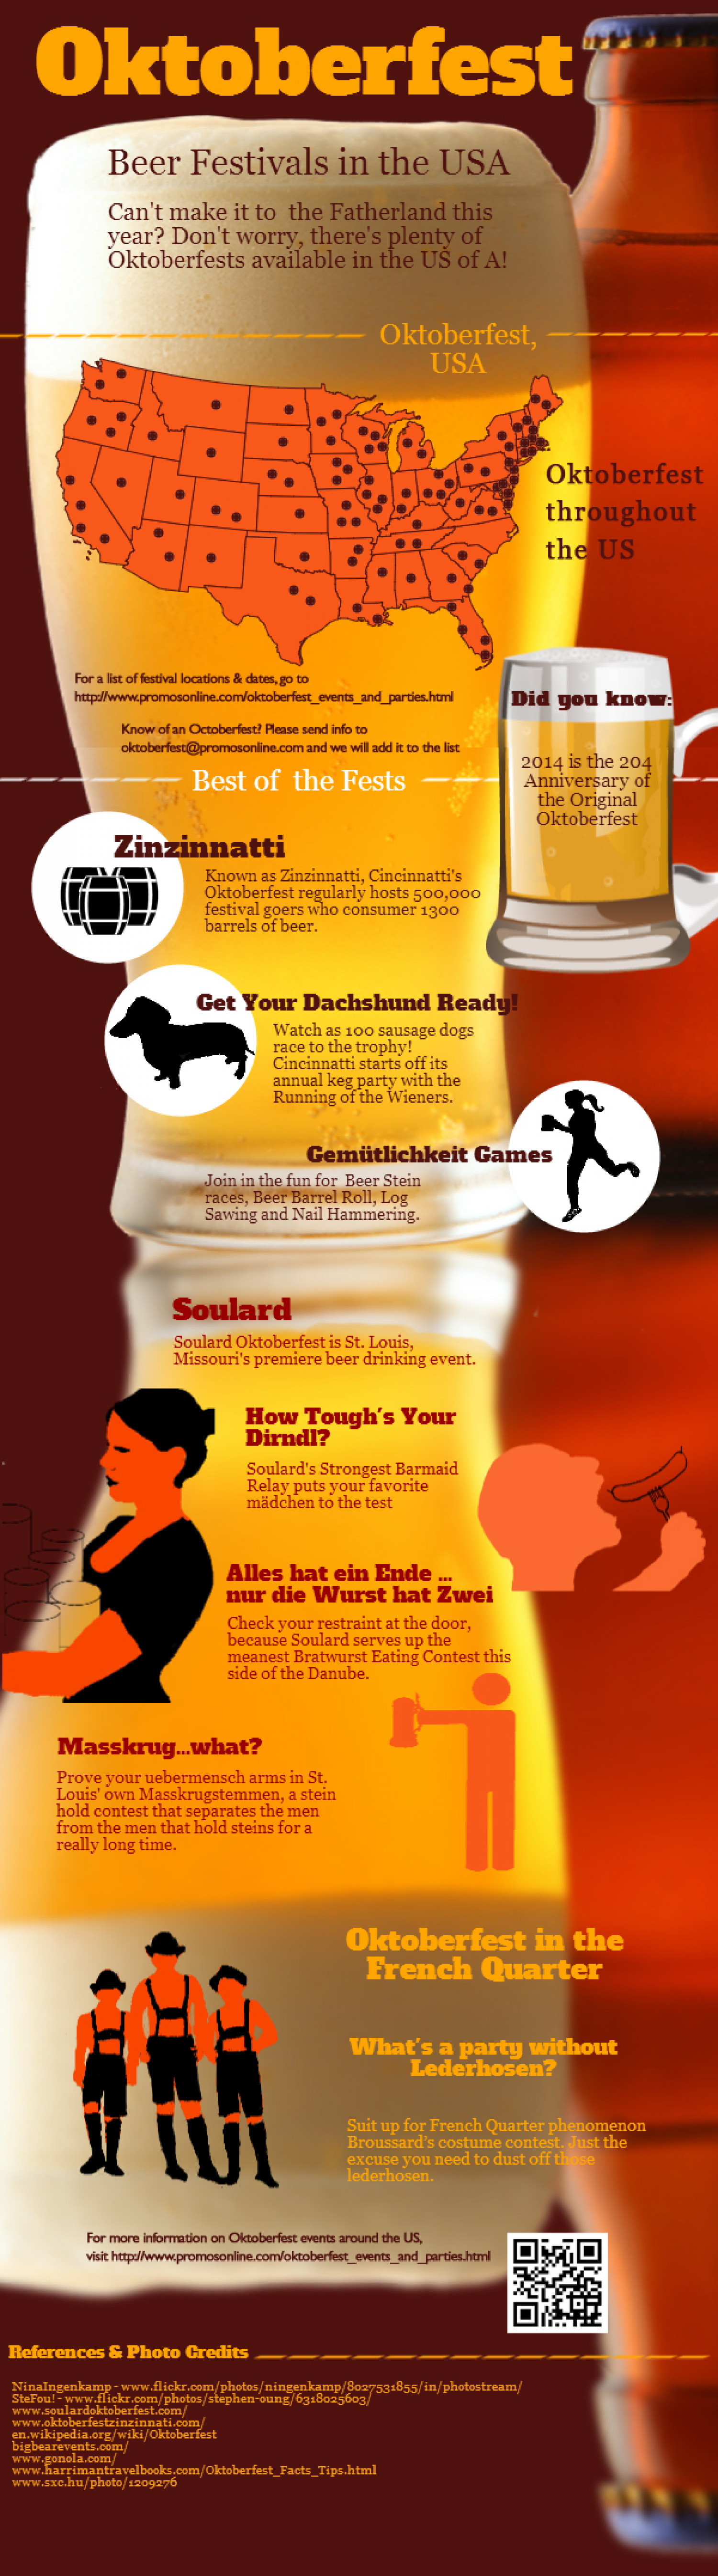 Oktoberfests in the USA Infographic